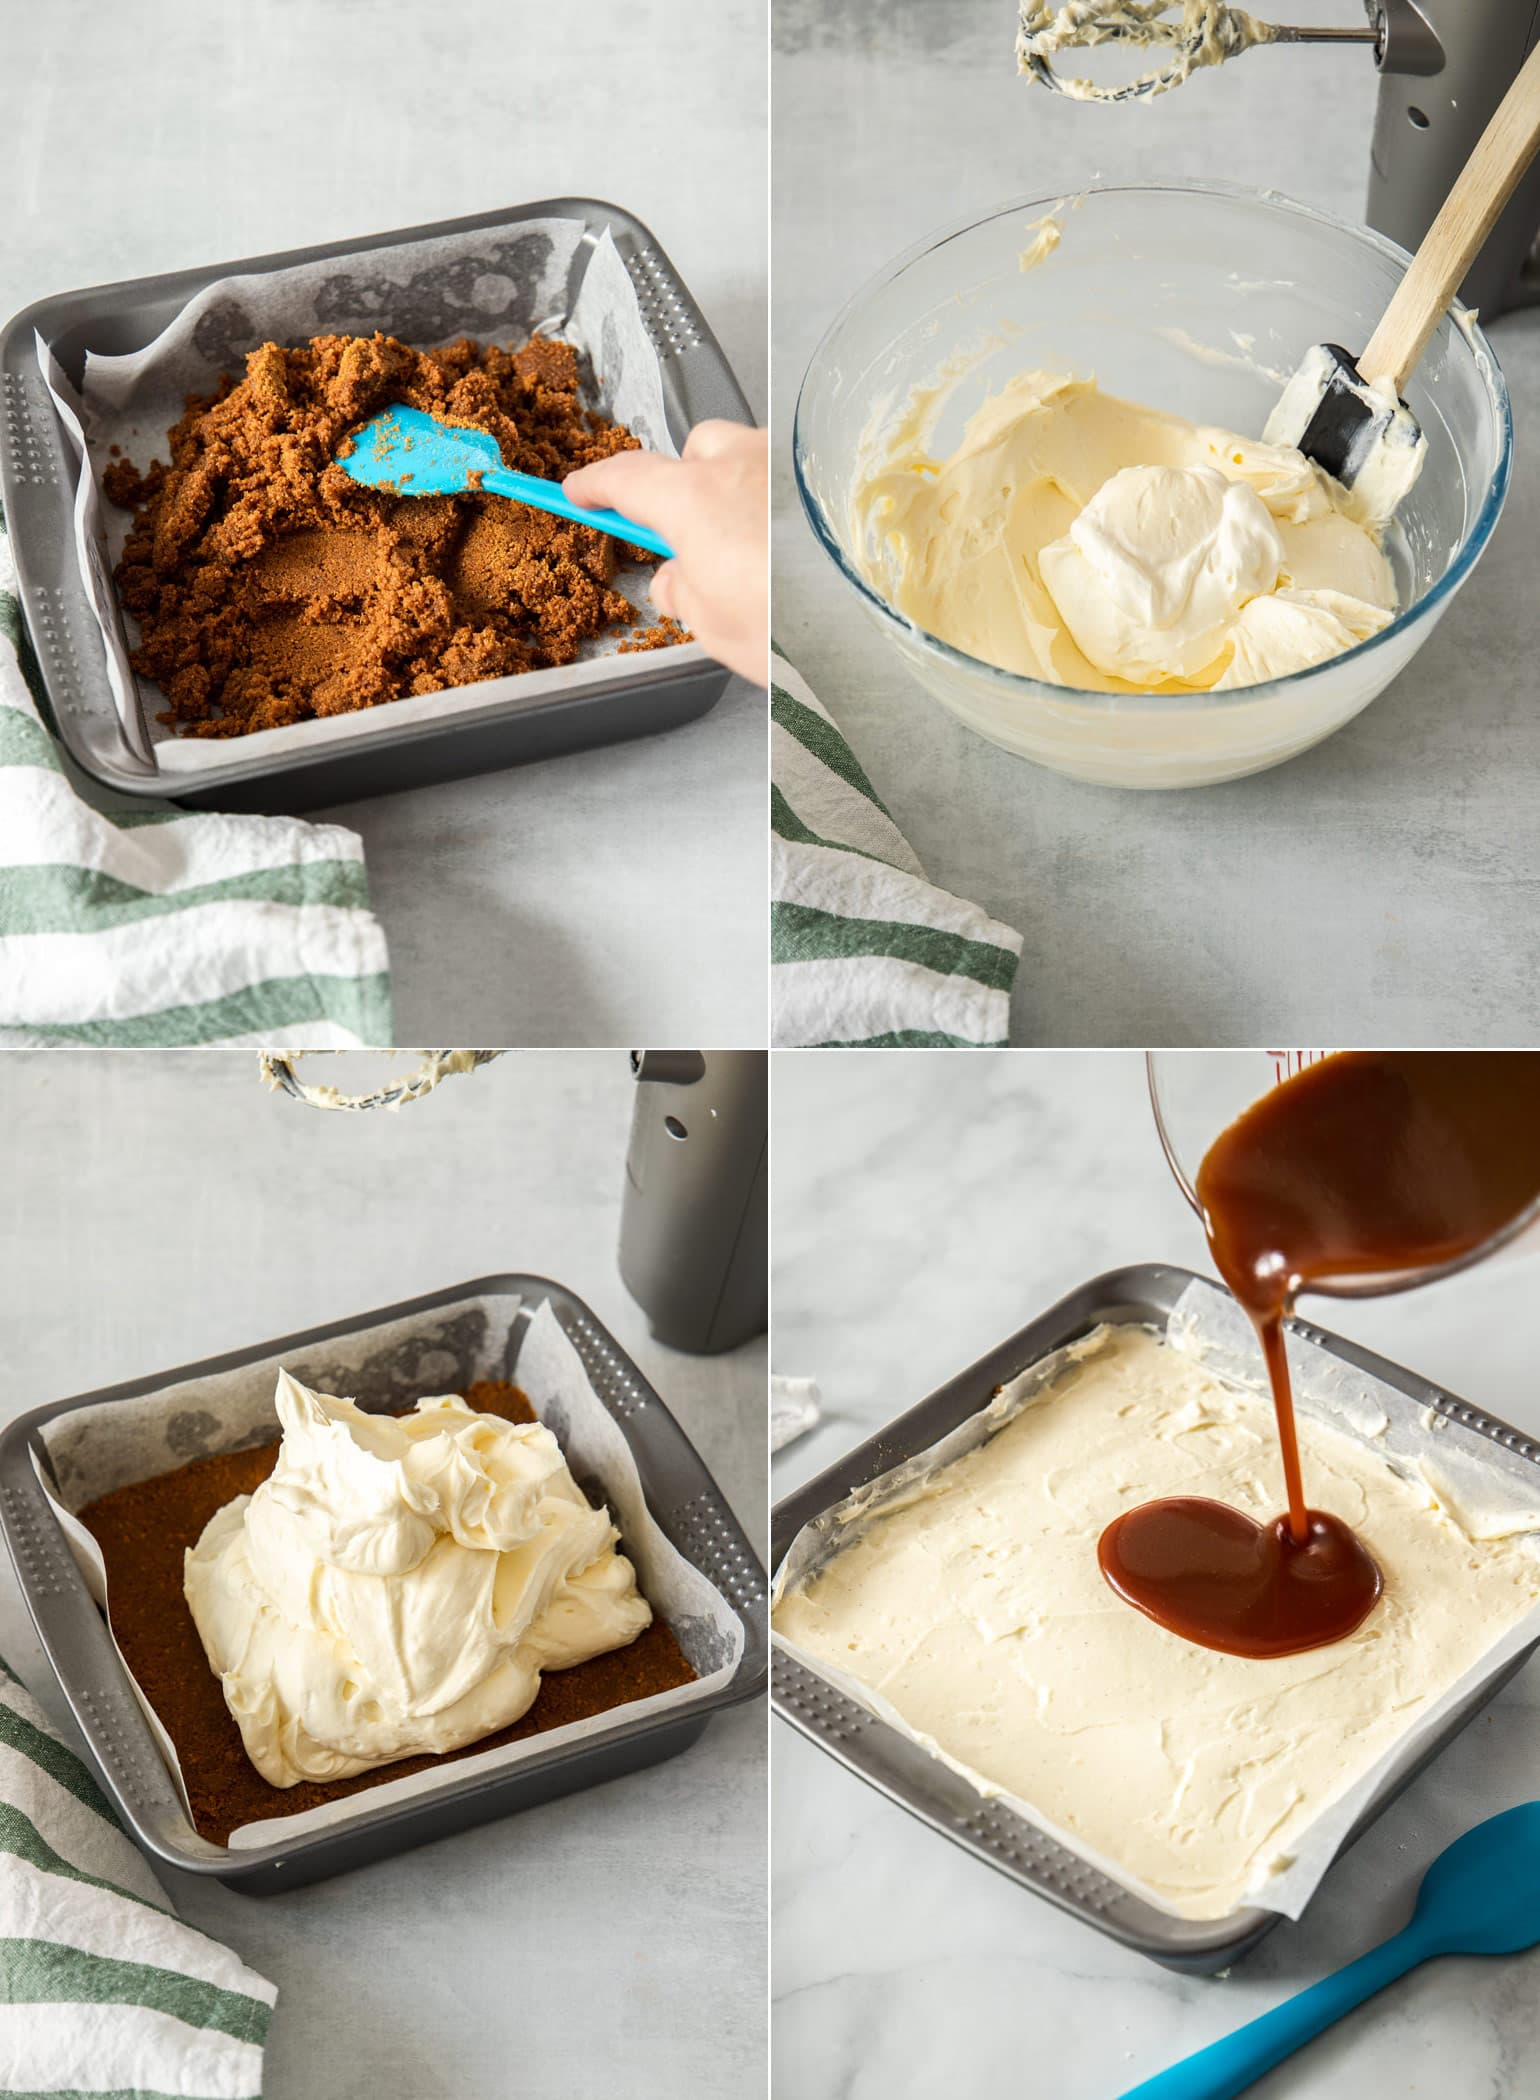 Step by step photos showing how to make caramel cheesecake bars